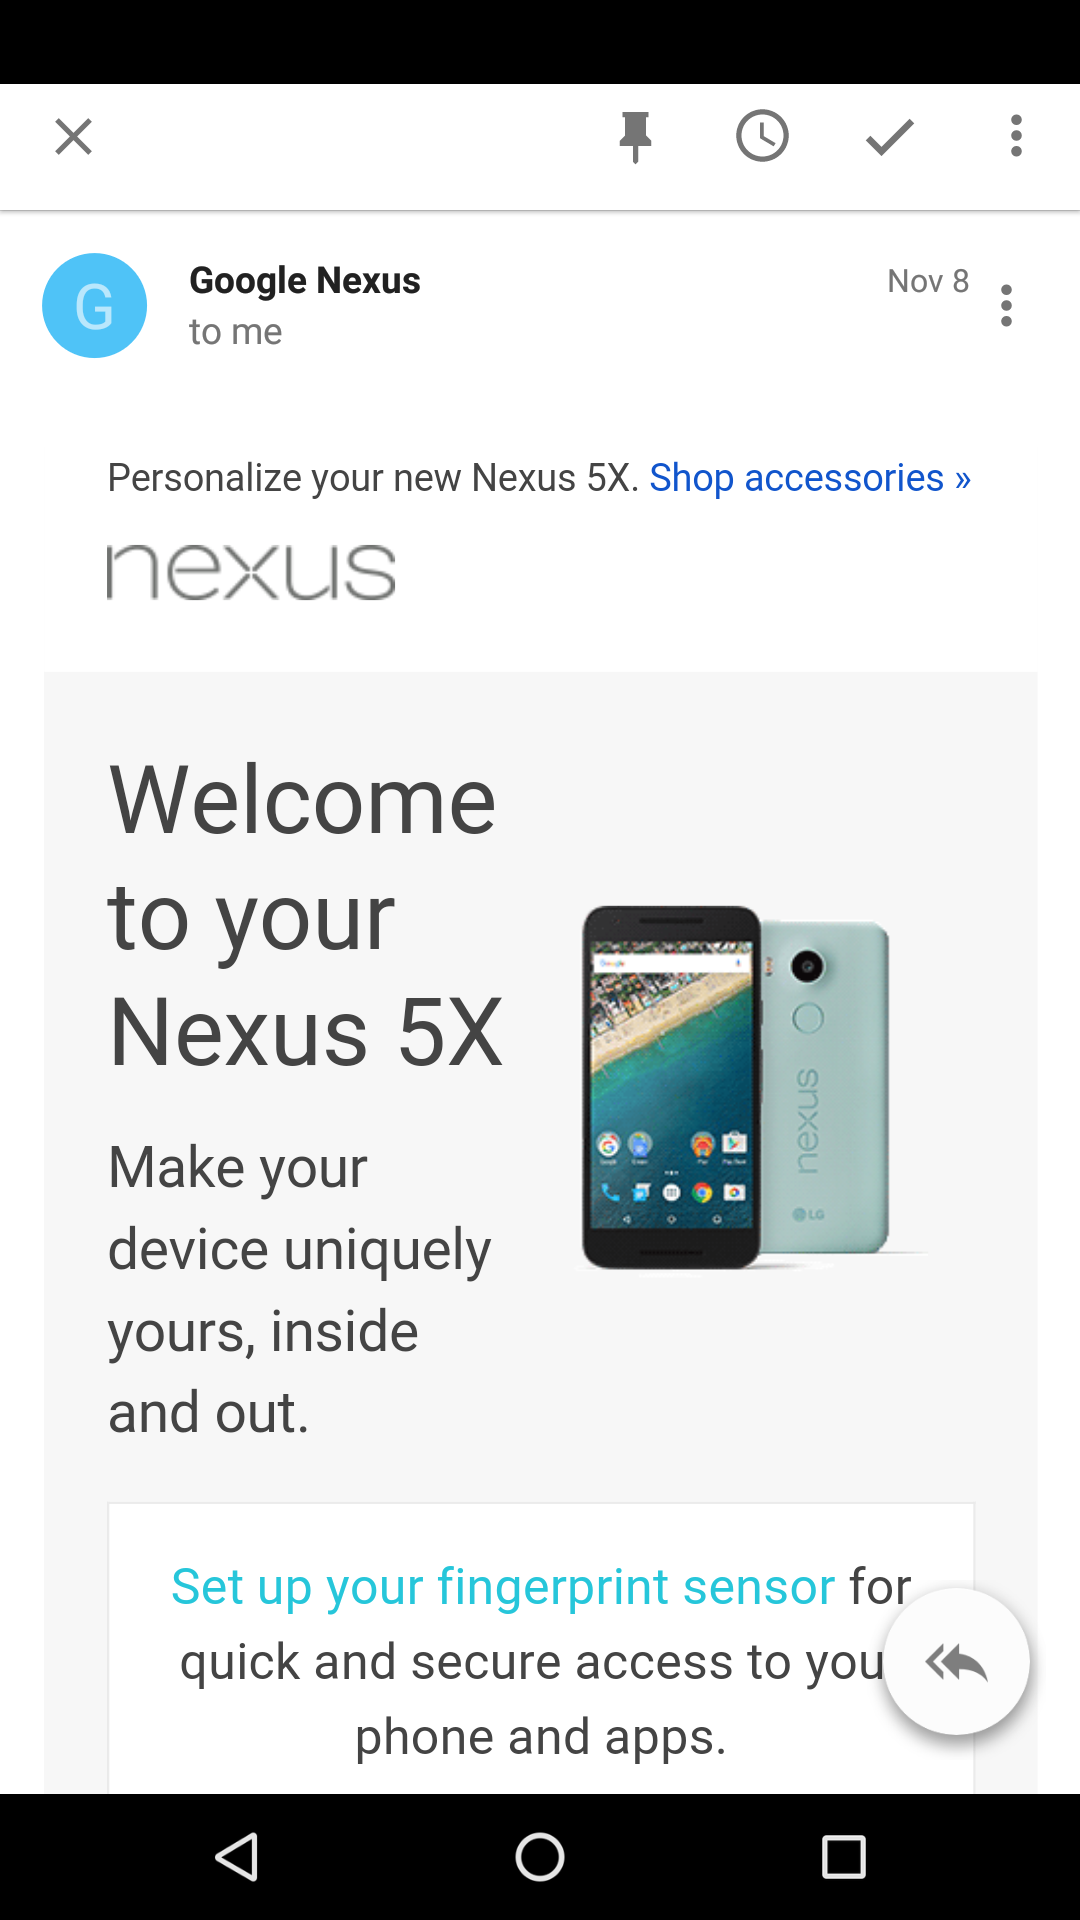 Welcome to your Nexus 5X